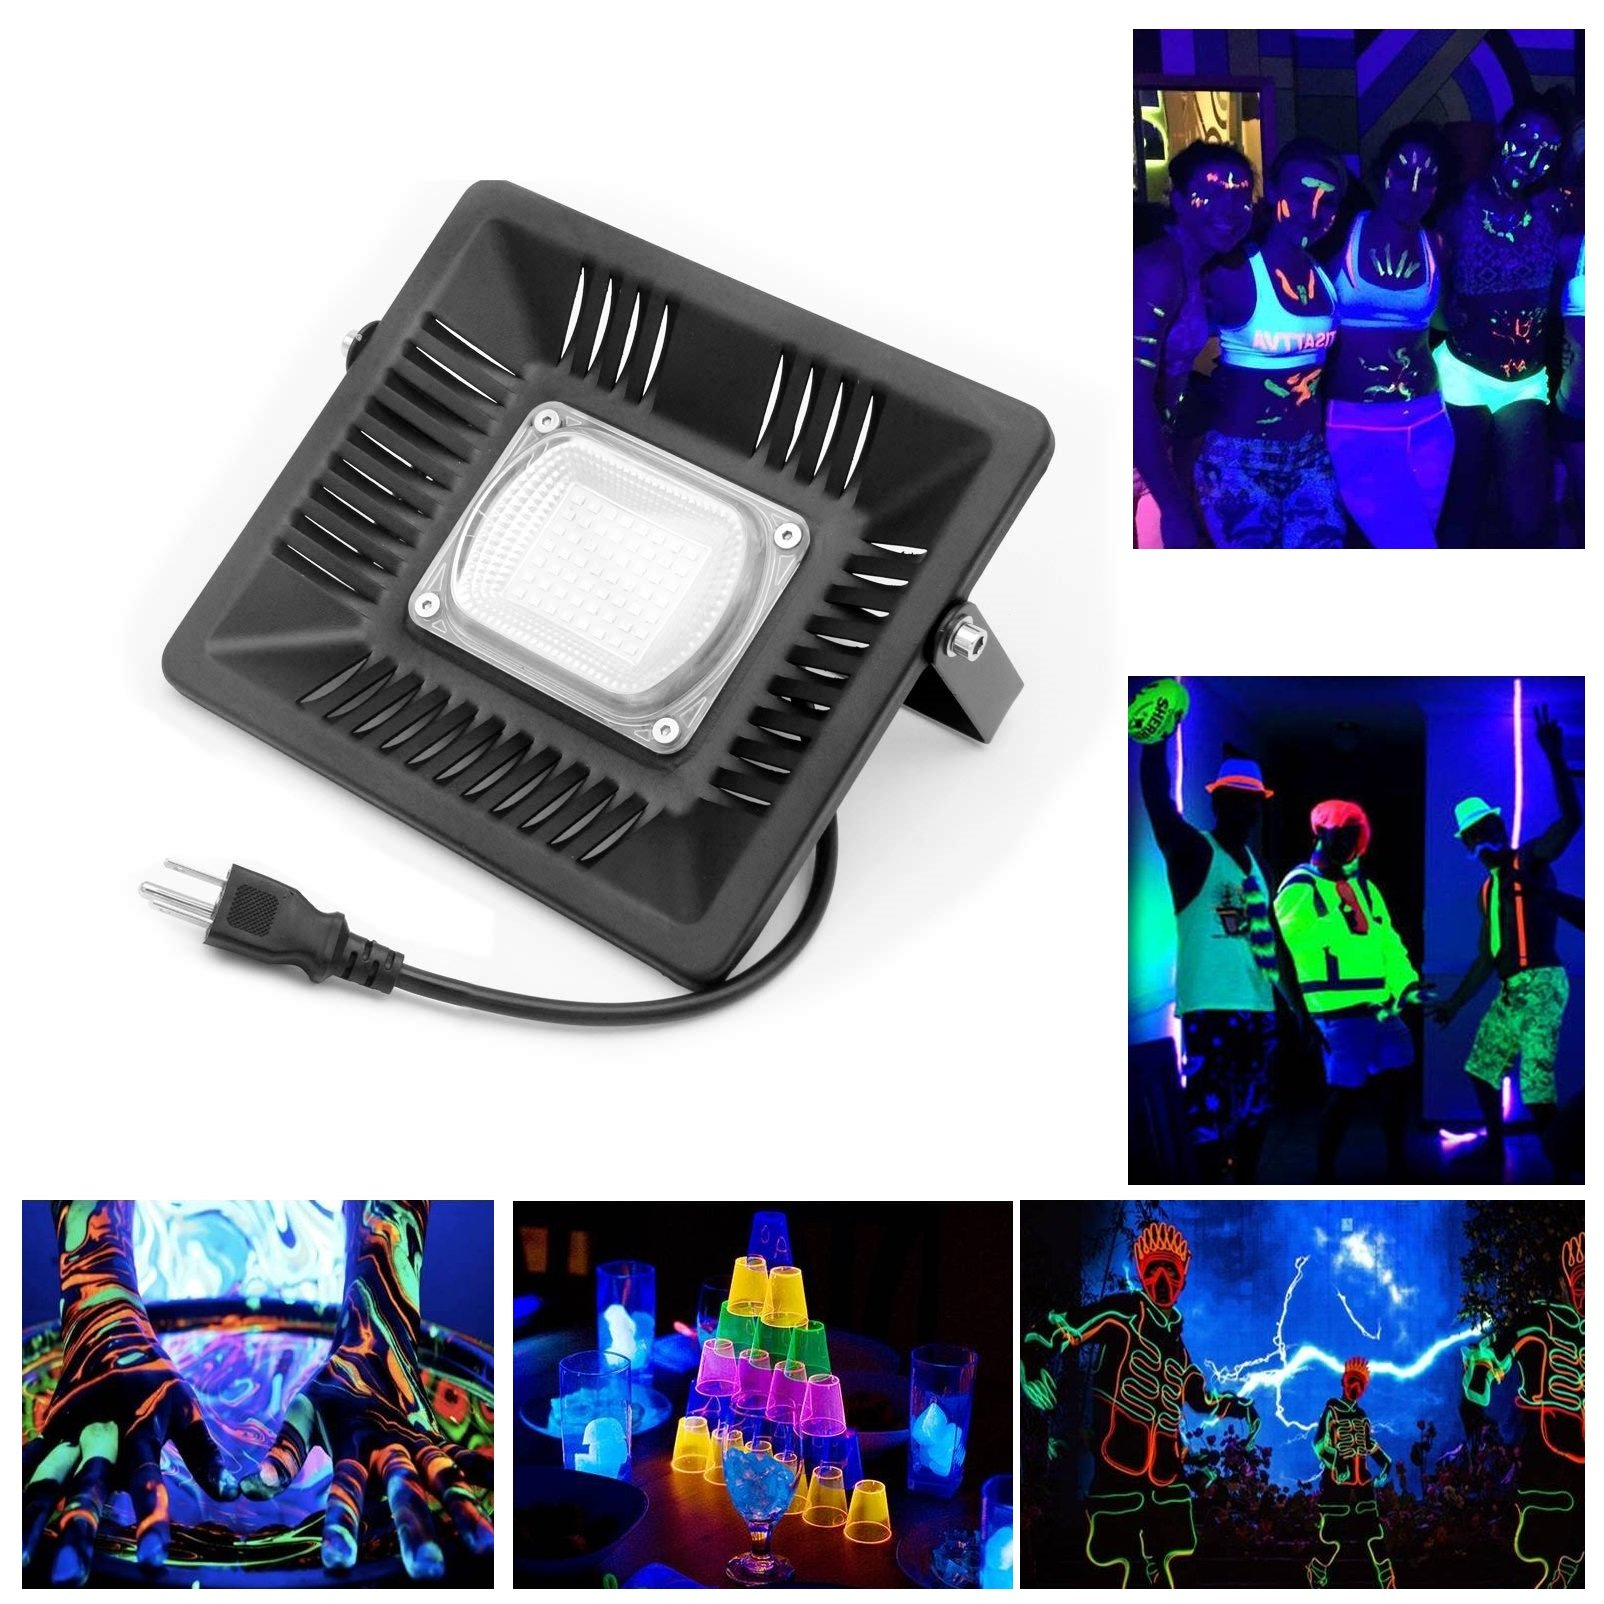 LumenBasic UV Black Light 15W LED Ultra Violet Flood Light Stand Blacklight 85V-265V AC IP66 Waterproof for Parties, Glue, Blacklight, Fishing, Aquarium